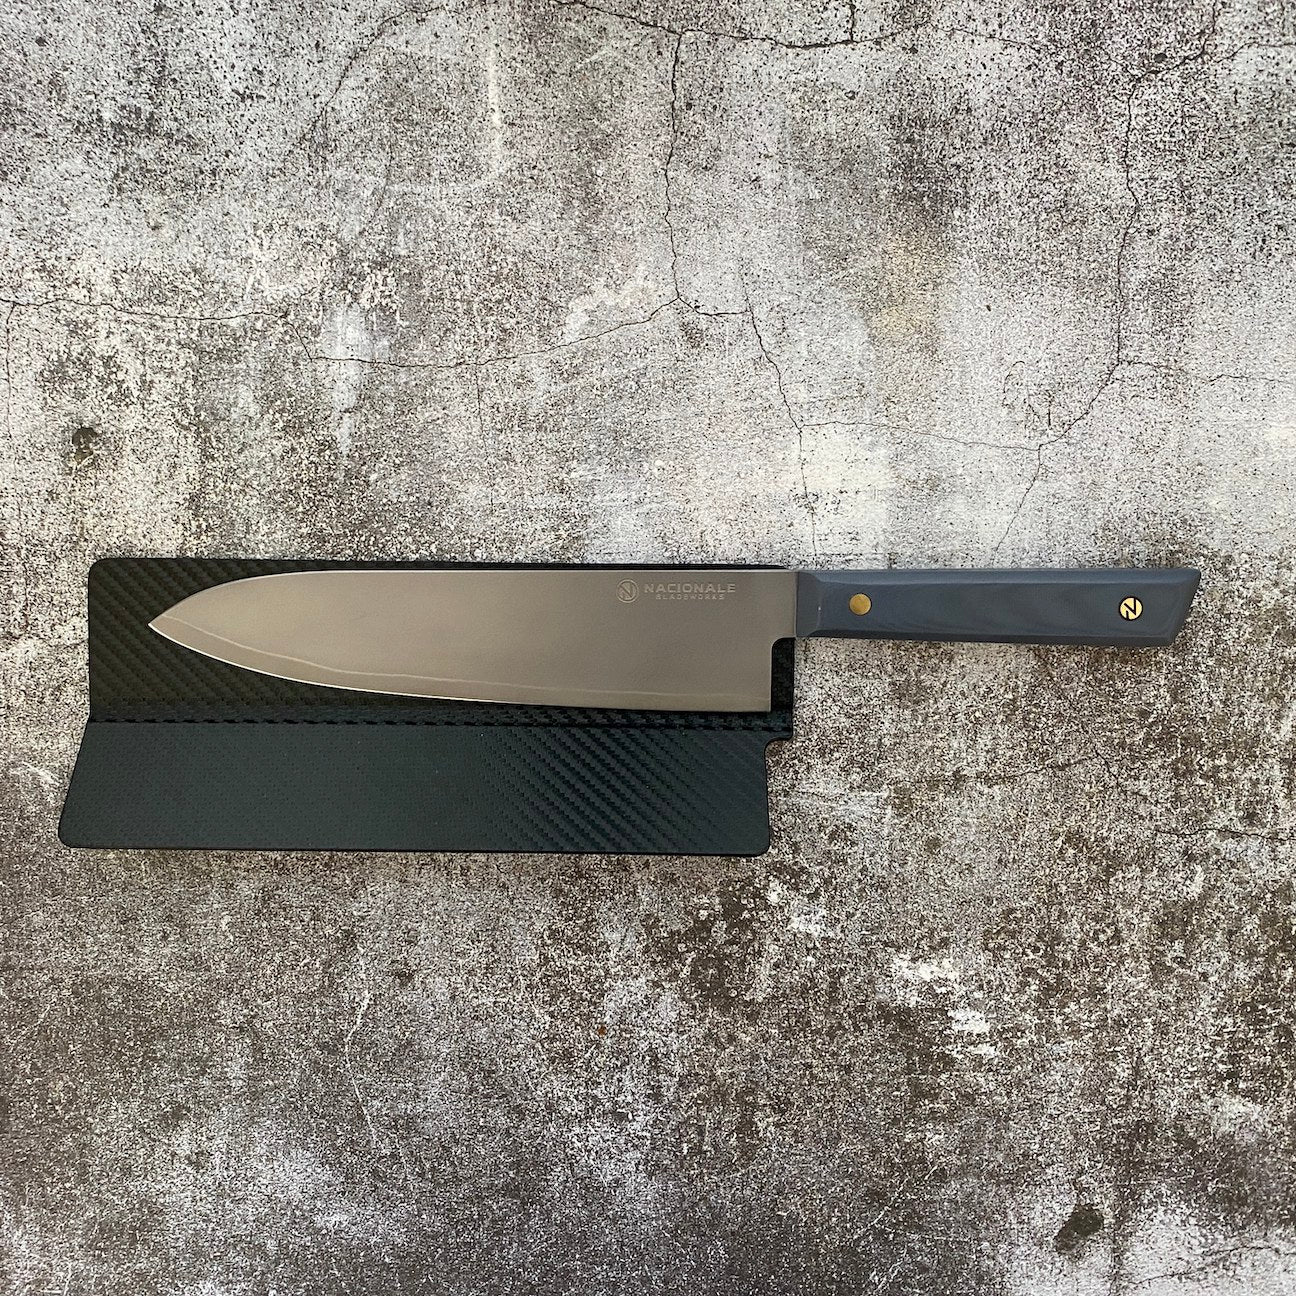 215mm Magnetic Knife Guard. Sonic Gray PU